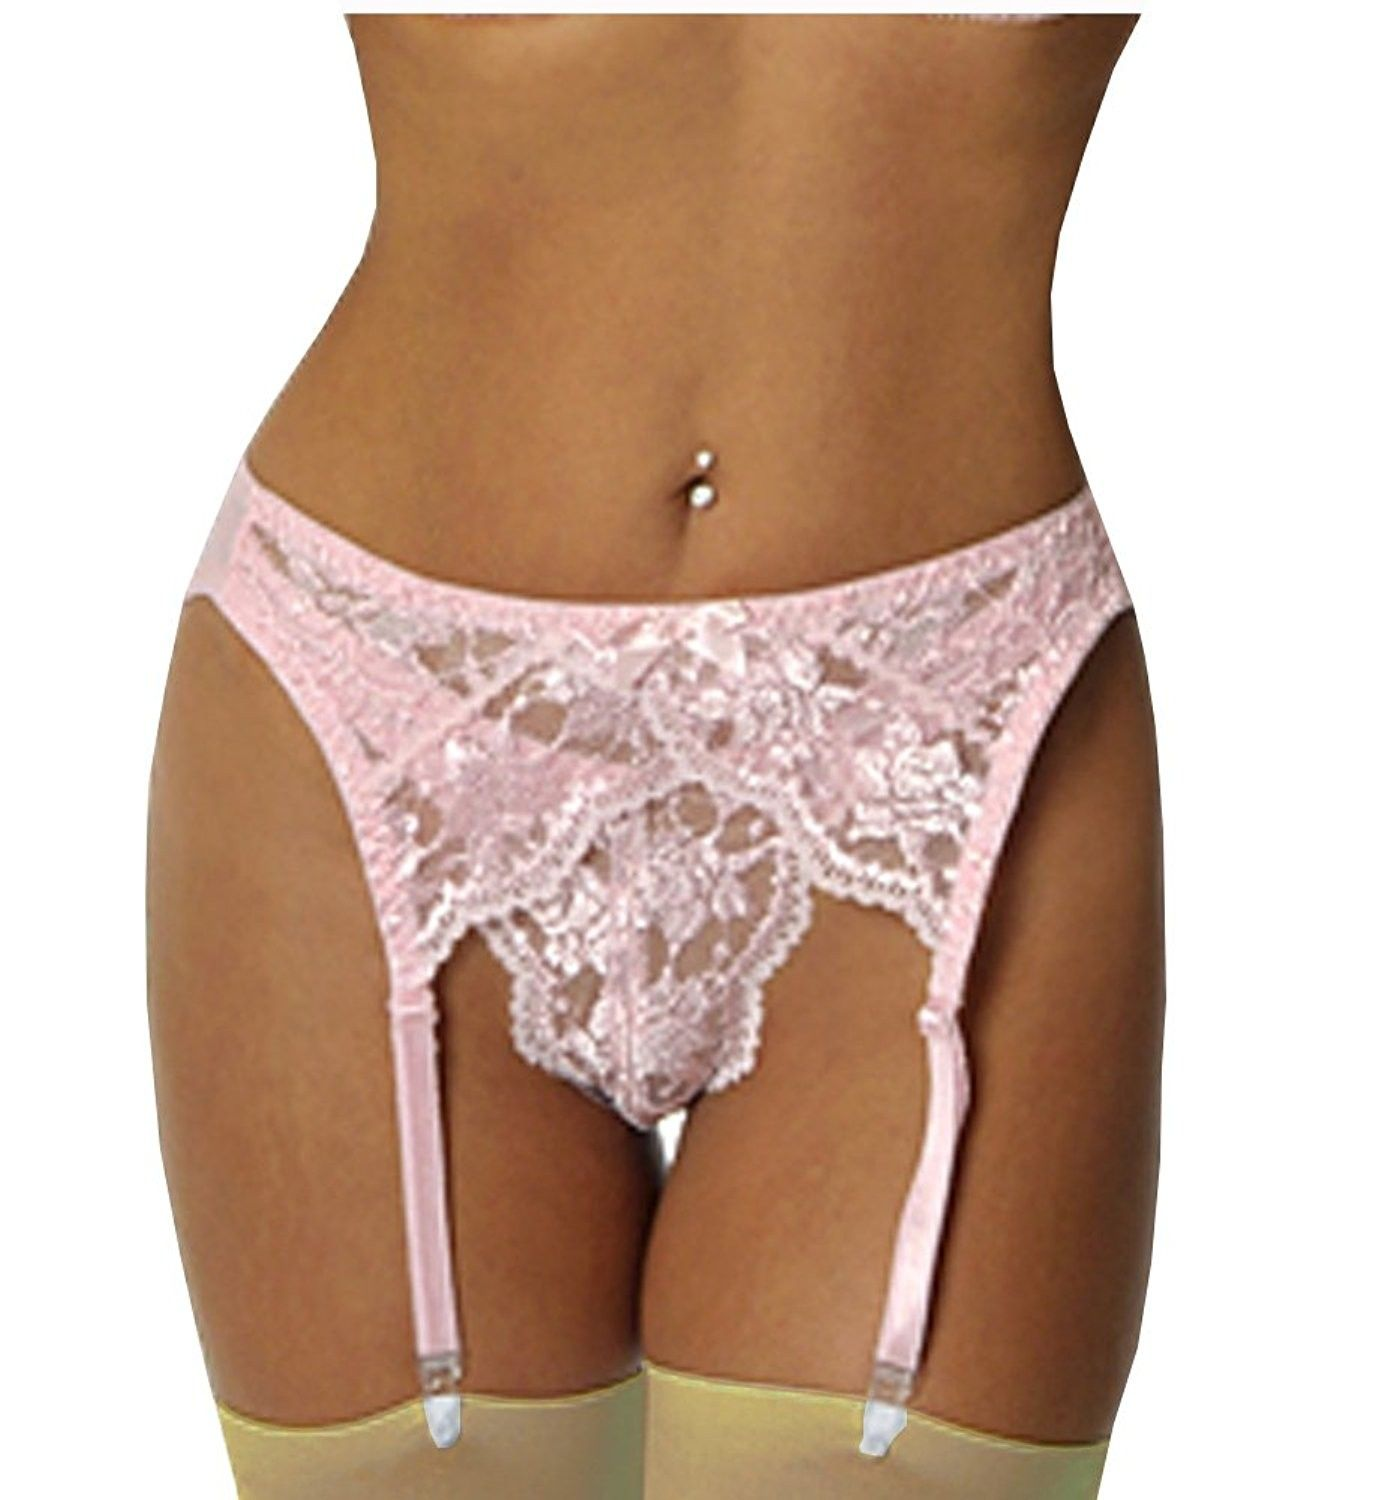 763062e0fc096 Women's Clothing, Lingerie, Sleep & Lounge, Lingerie, Garters & Garter Belts,  (TM) Luster Lace Garter Belt Thong Stockings 3 Pcs Bundle Black - Pink ...